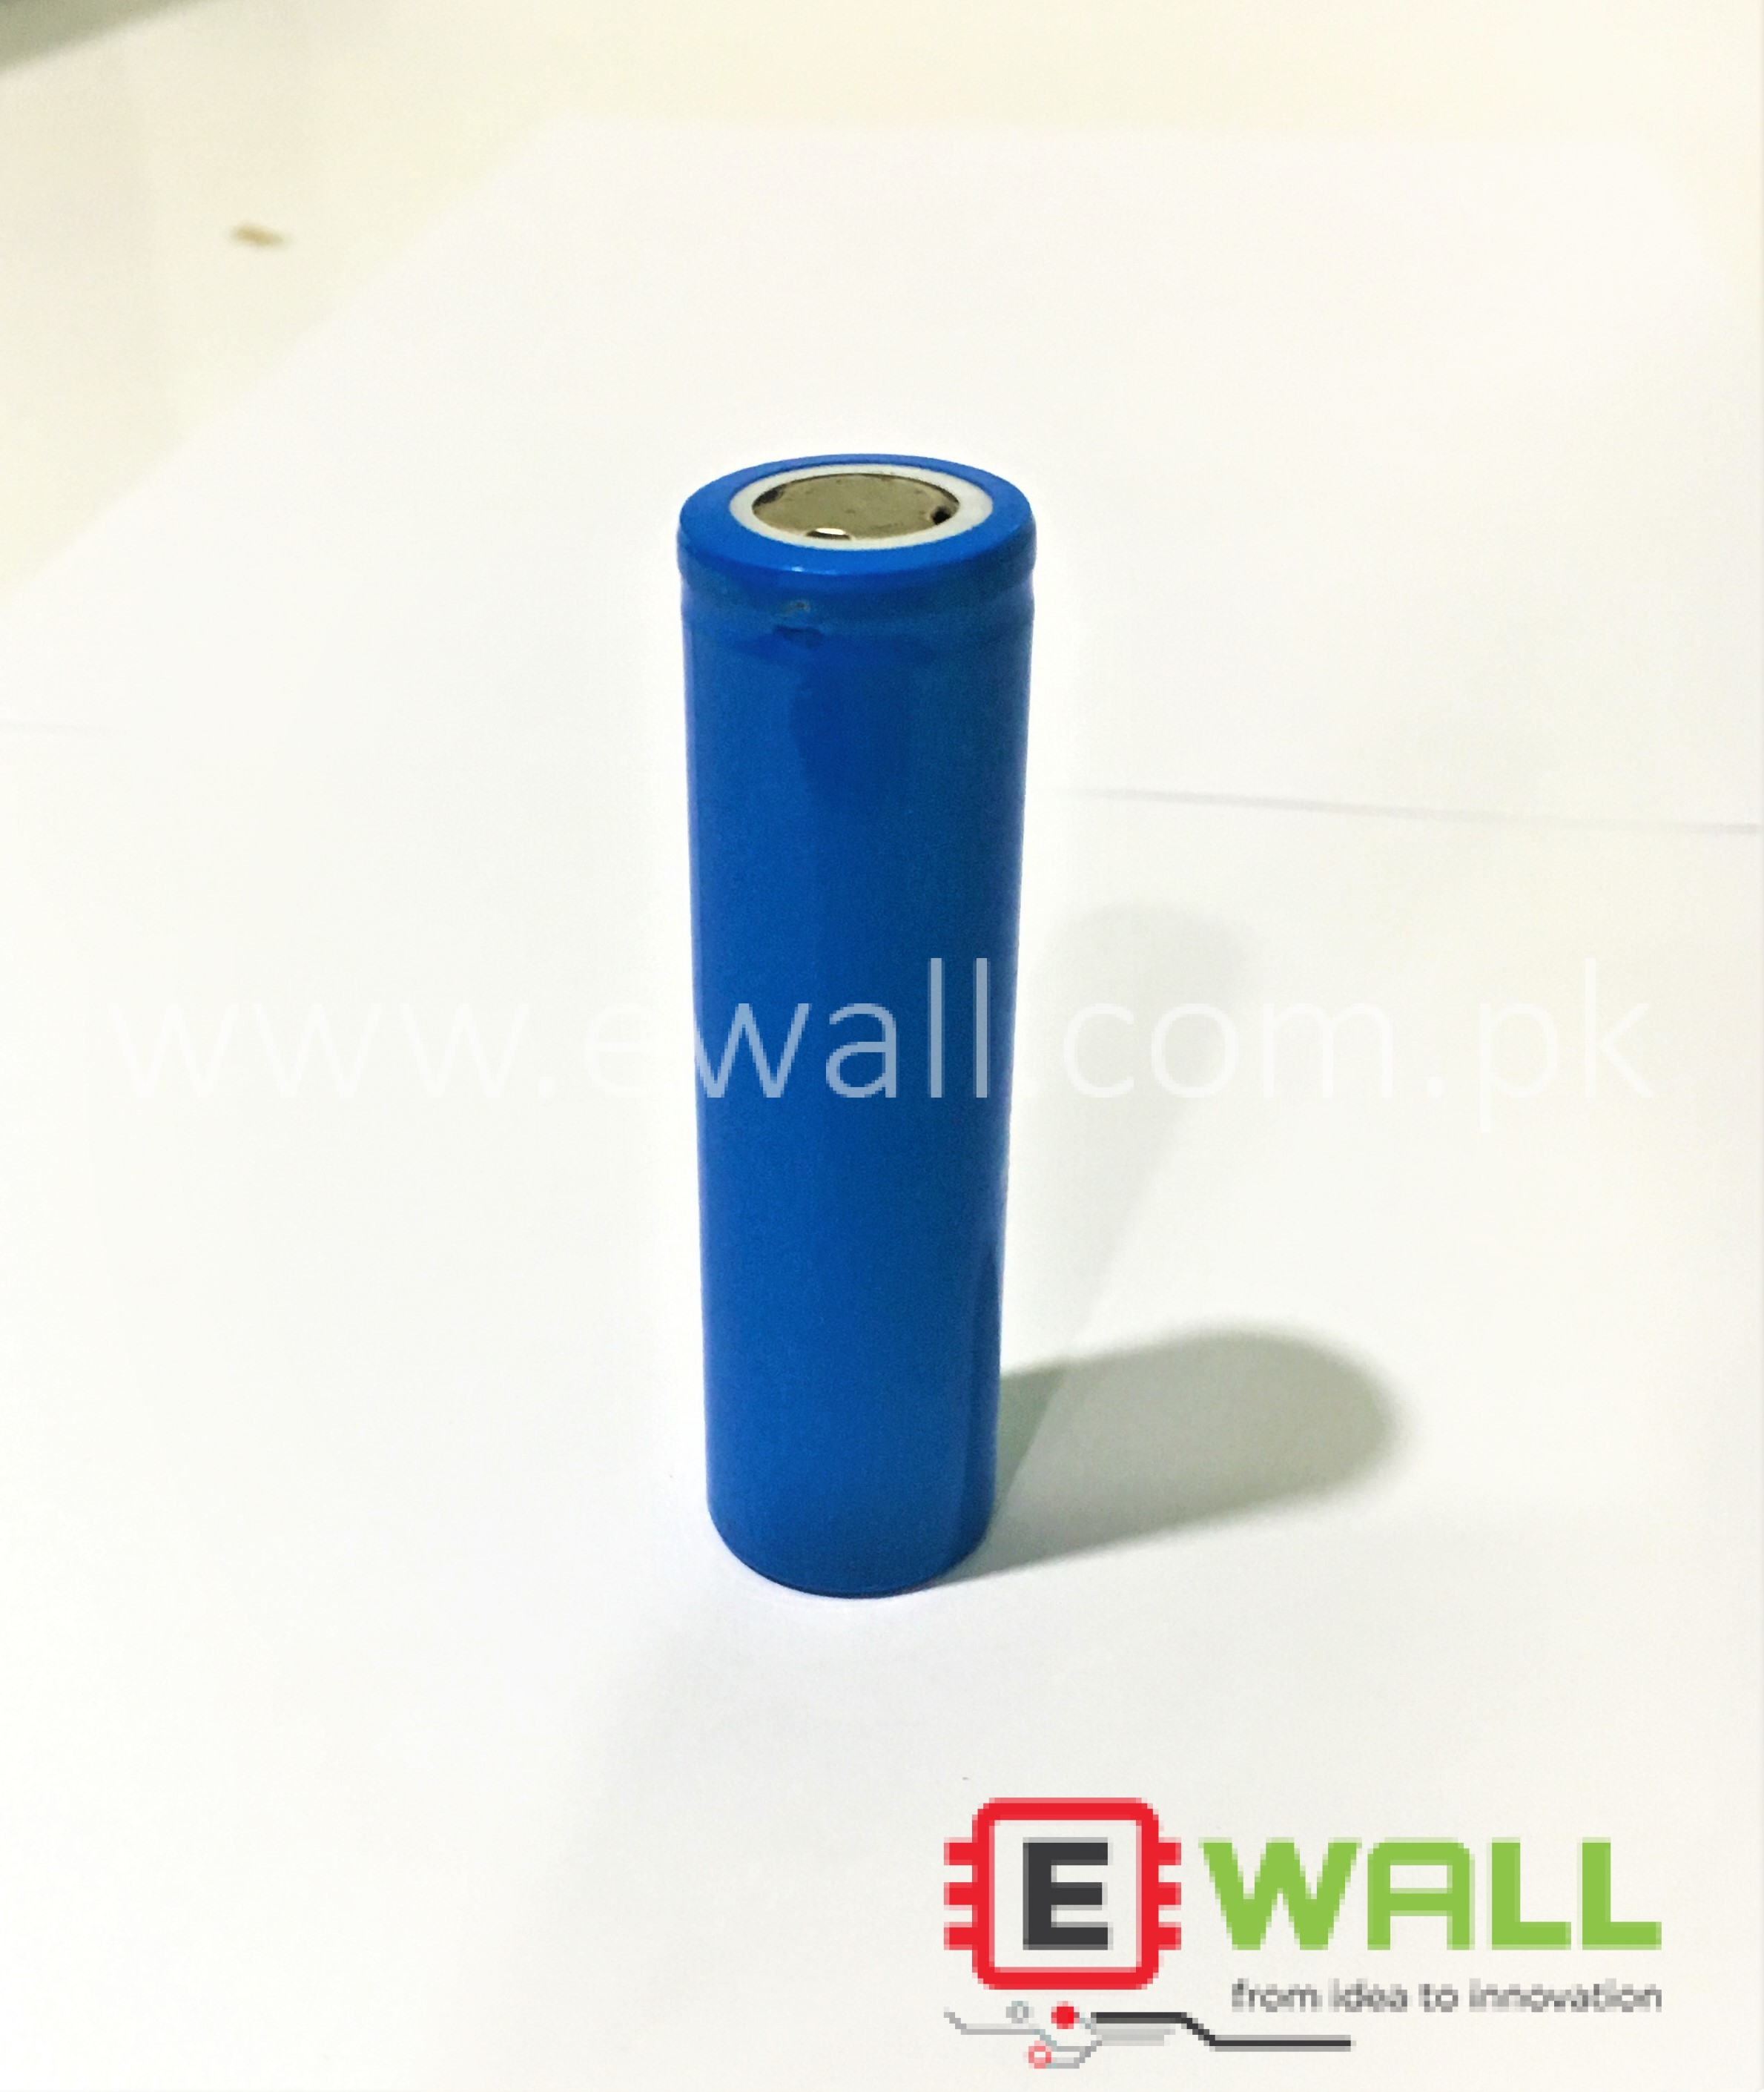 18650 3.7V Rechargeable Battery Lithium-ion 1200 mAh (Economical )